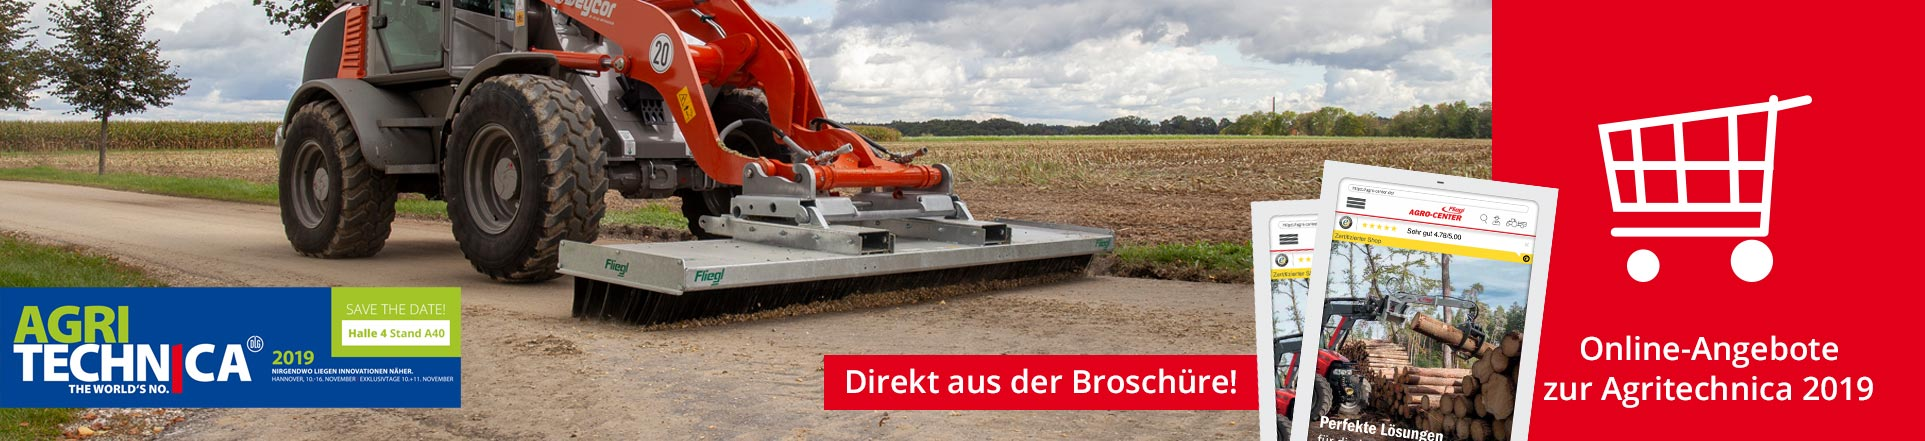 Agritechnica-Angebote